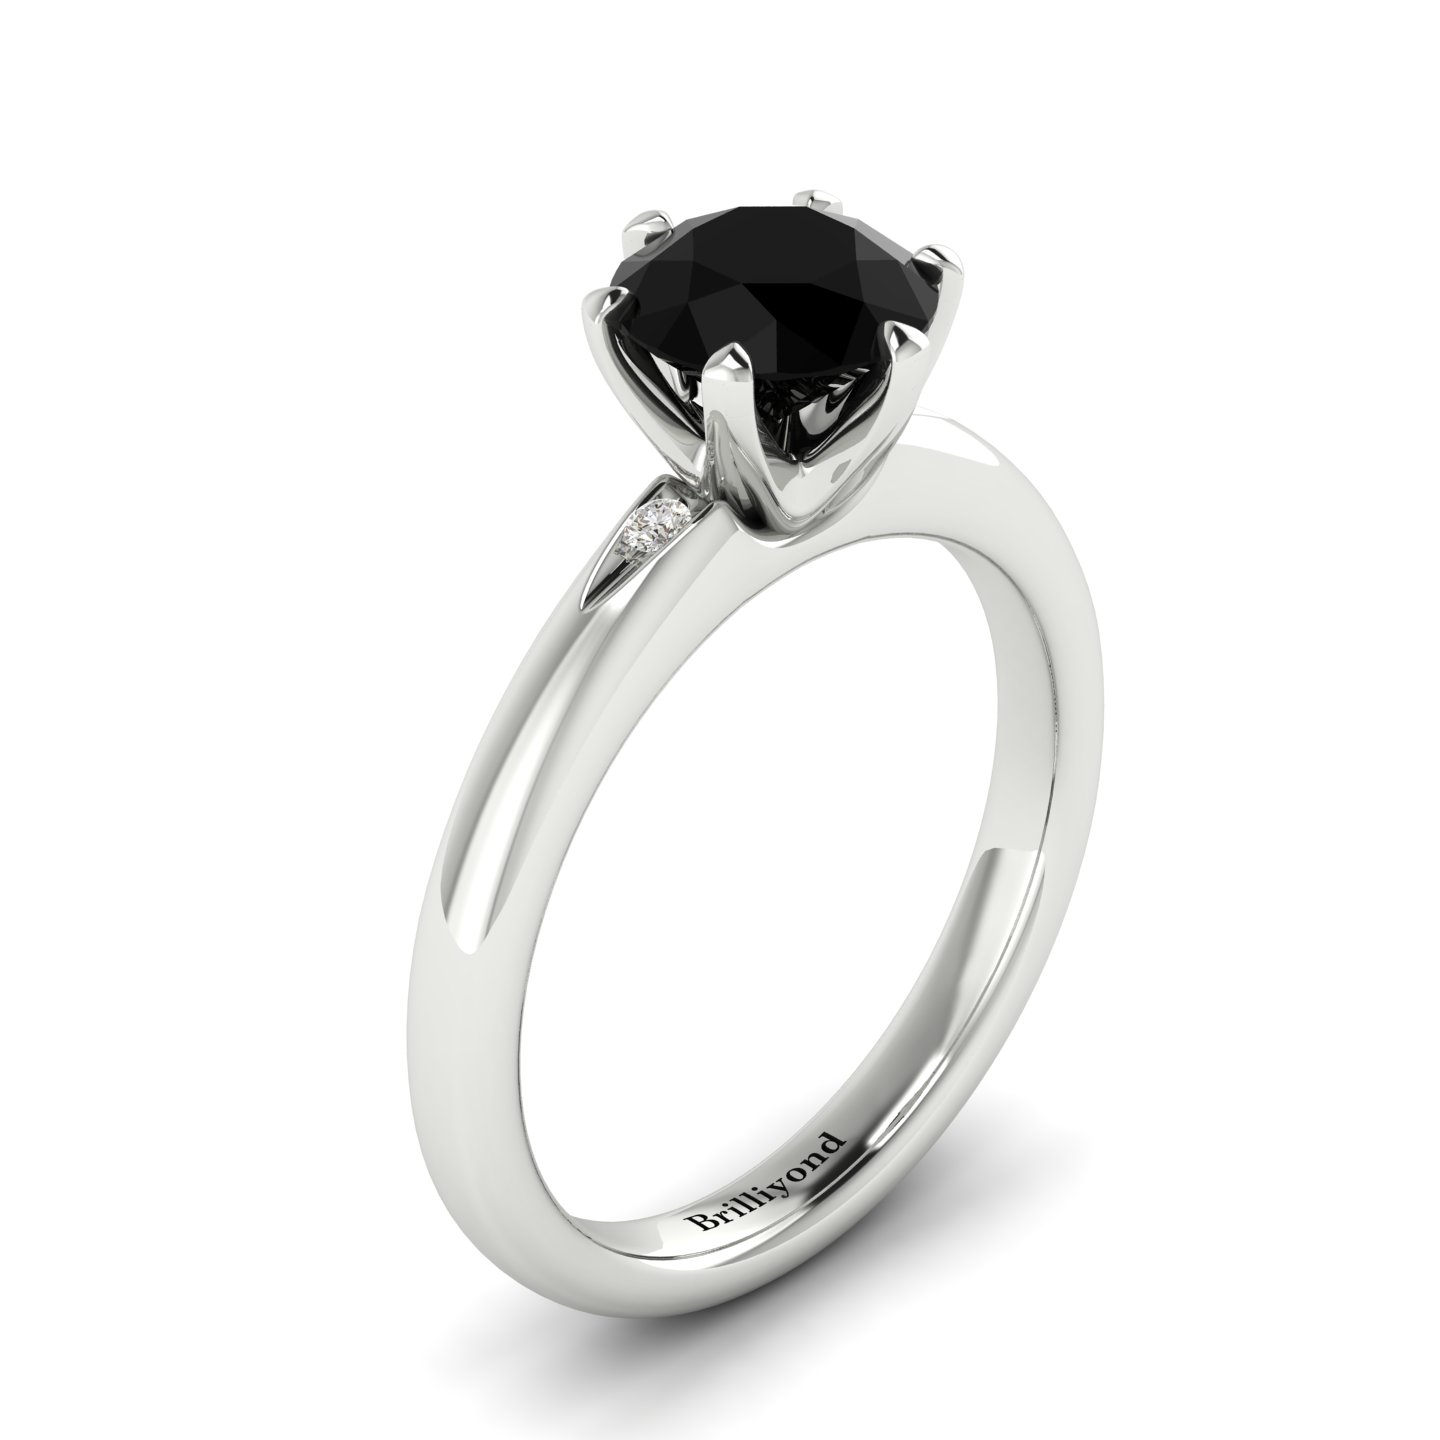 Onyx White Gold Solitaire Engagement Ring Byond_image1